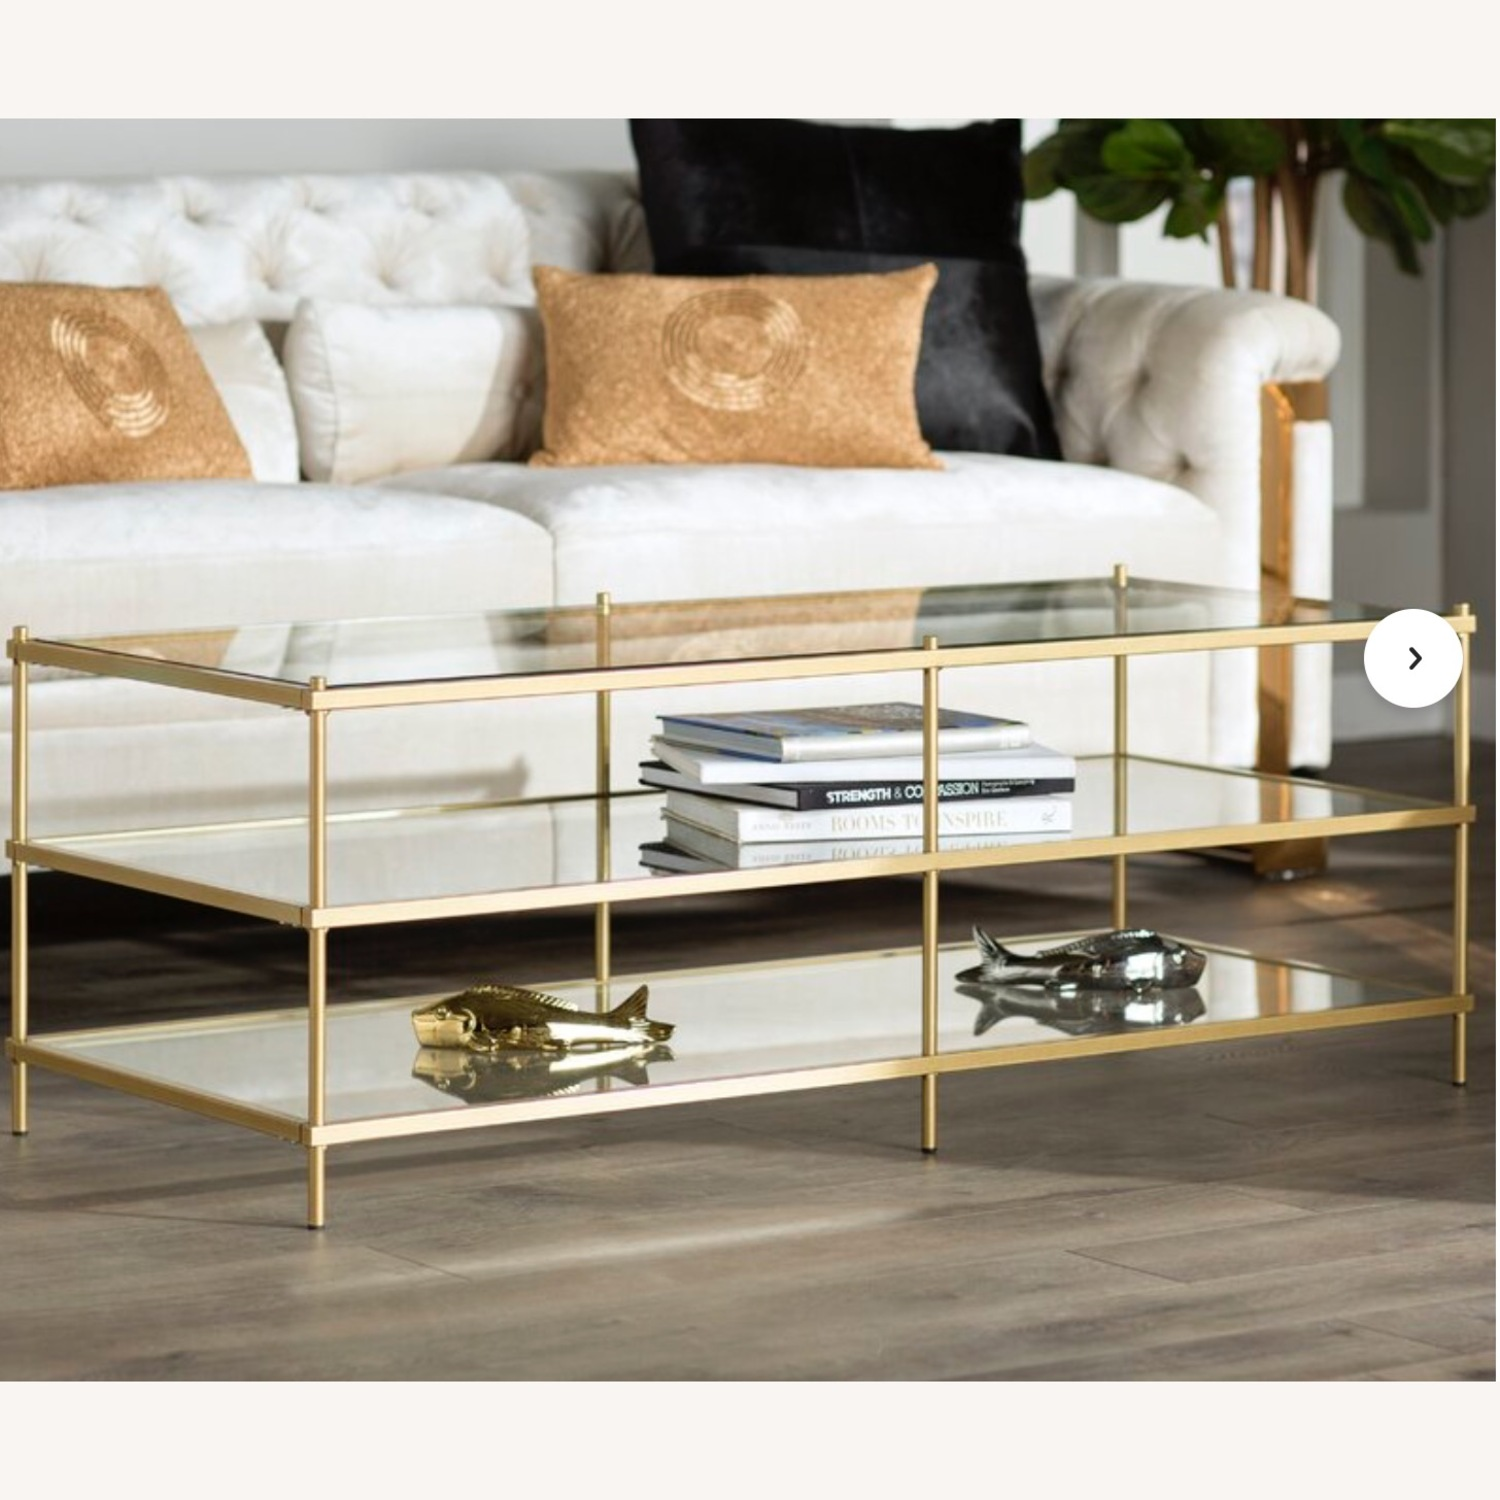 Wayfair Glass Table With Gold Detail - image-4